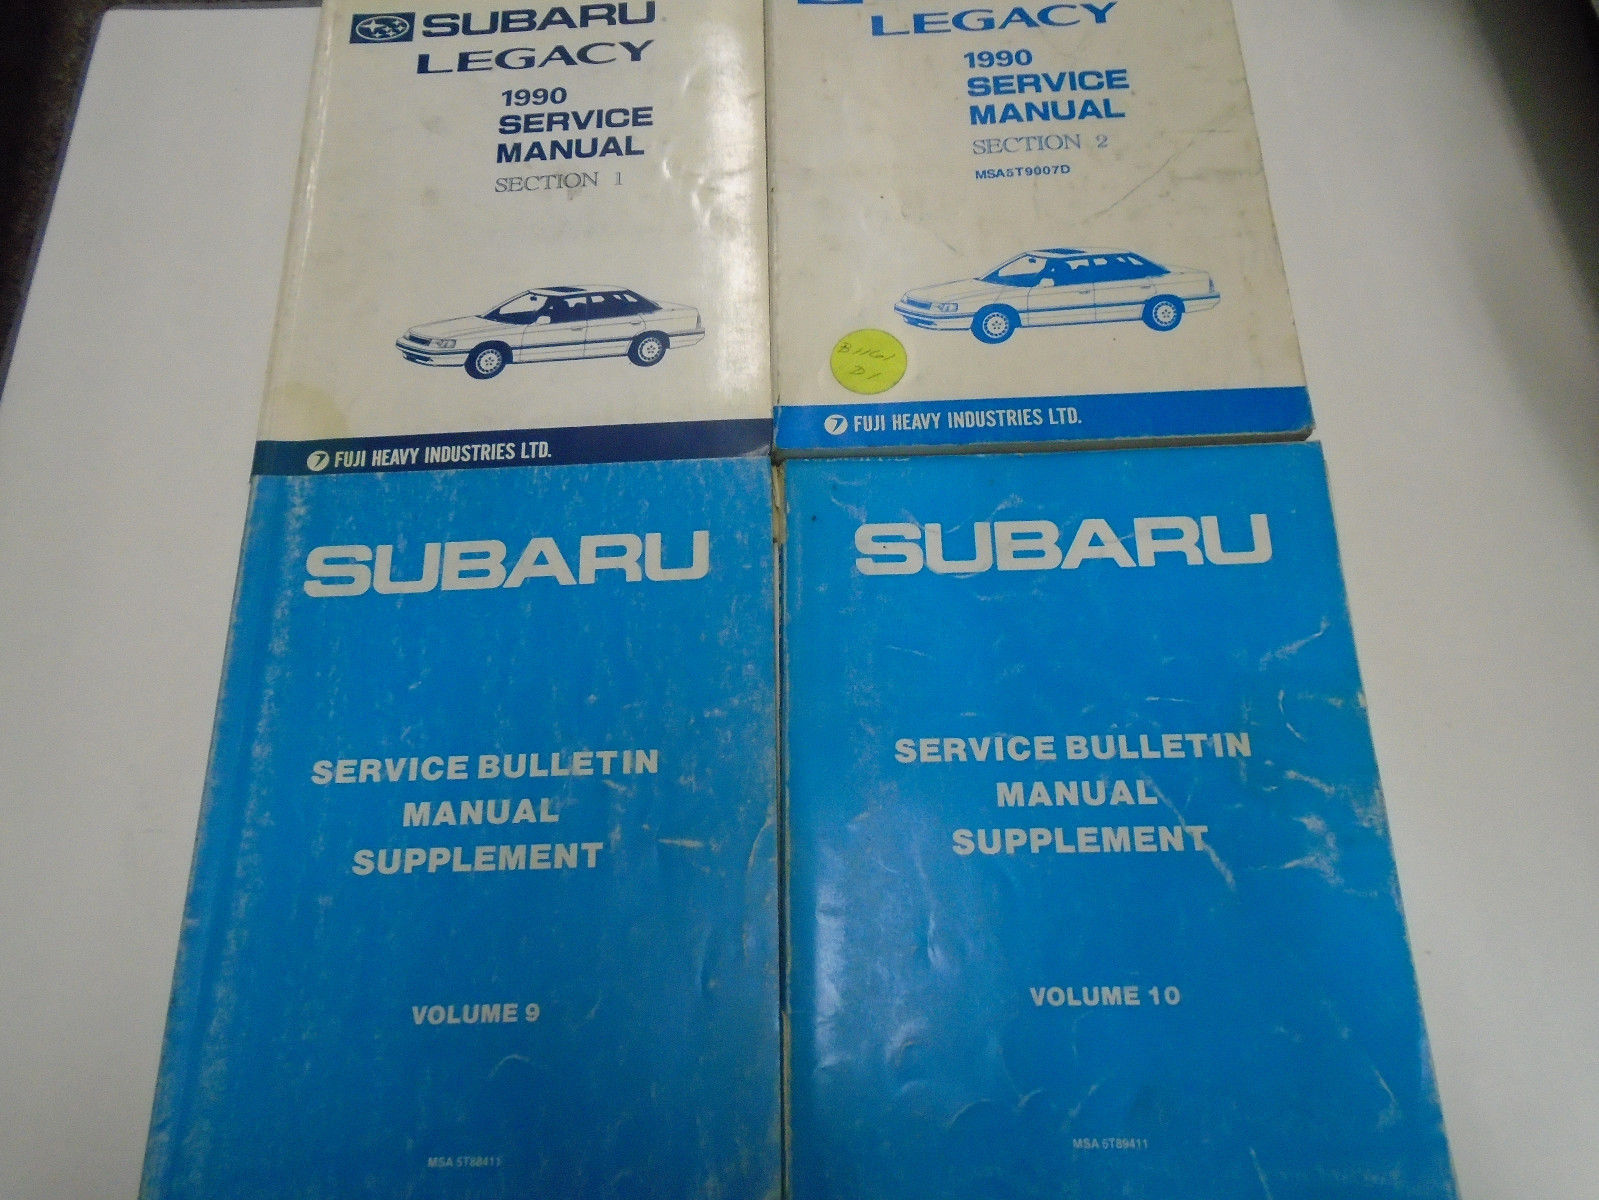 1990 Subaru Legacy Service Repair Shop Manual SET Books Incomplete FACTORY OEM